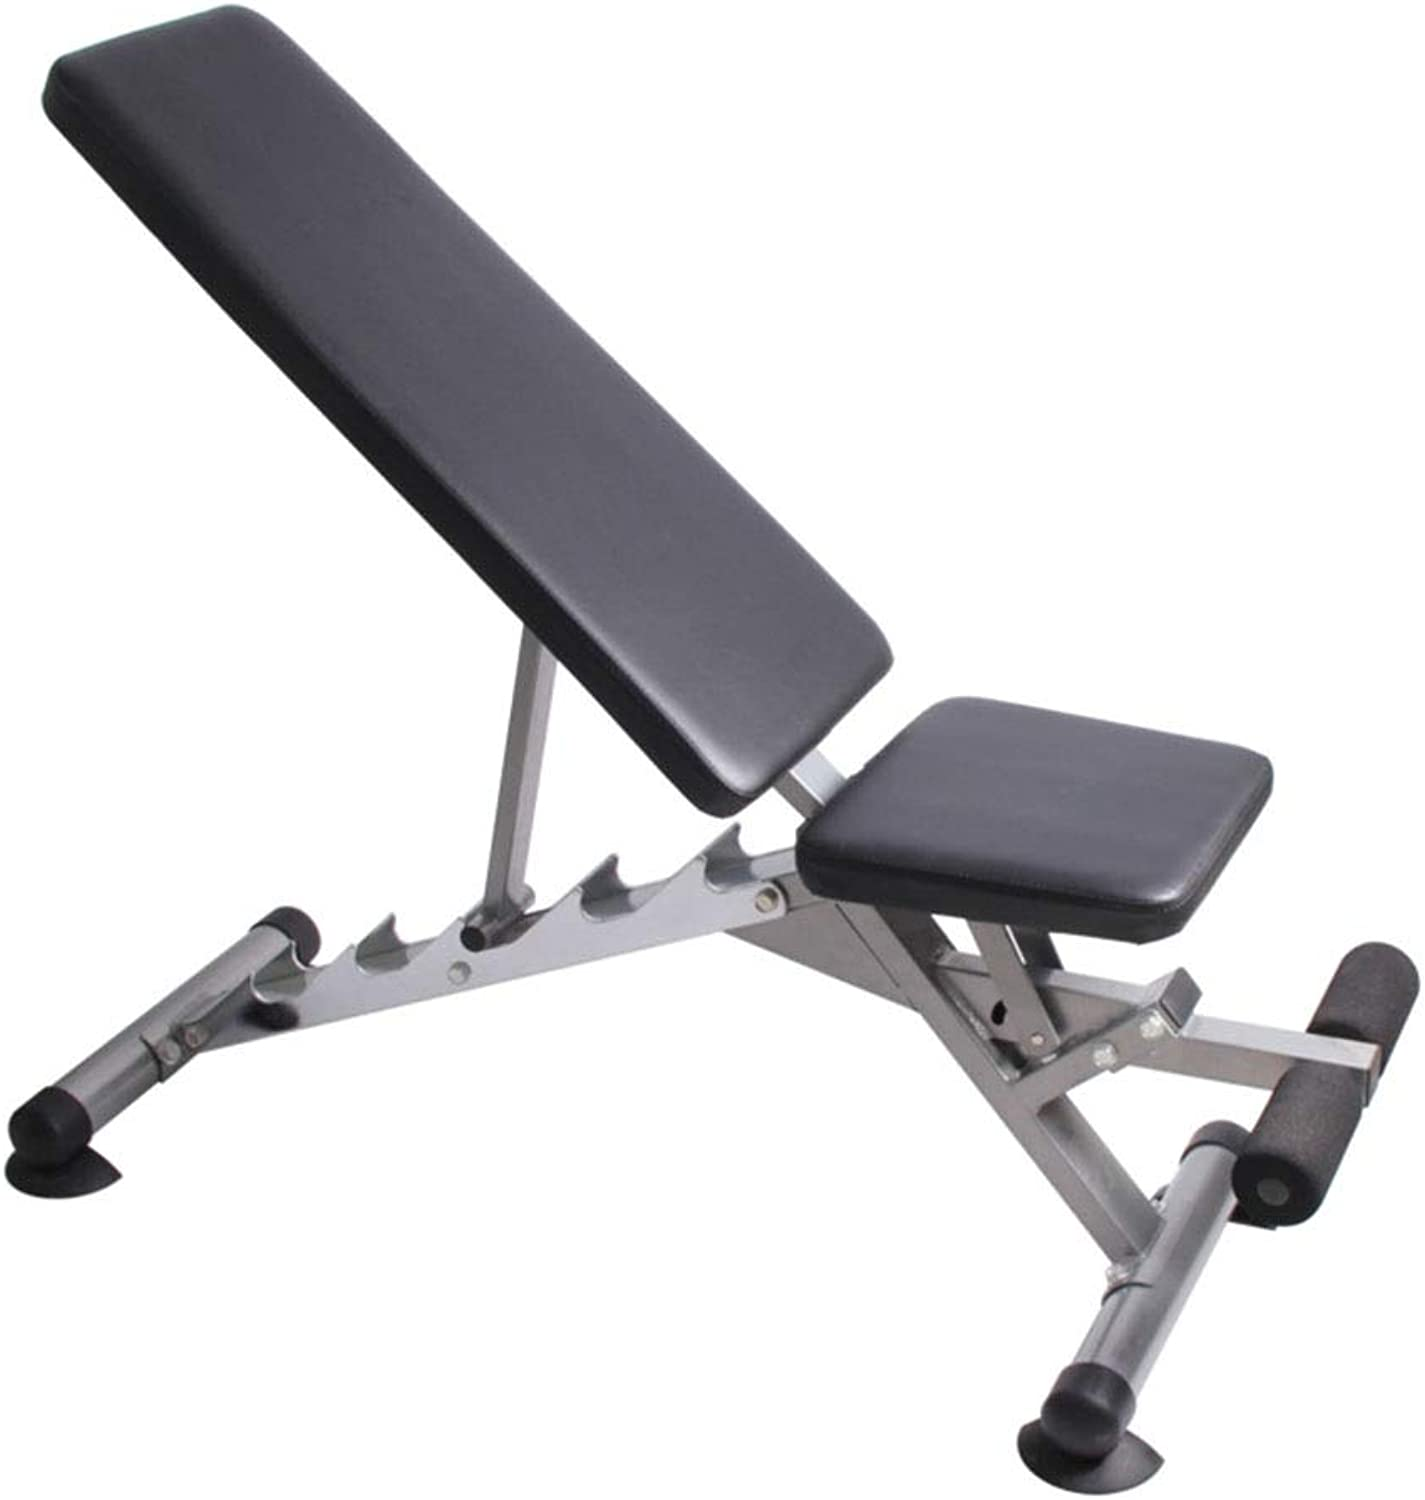 Heavy Duty Utility Weight Bench Adjustable for Unisex Adult, Sit Up AB Flat Incline Decline Bench, Home Gym Equipment